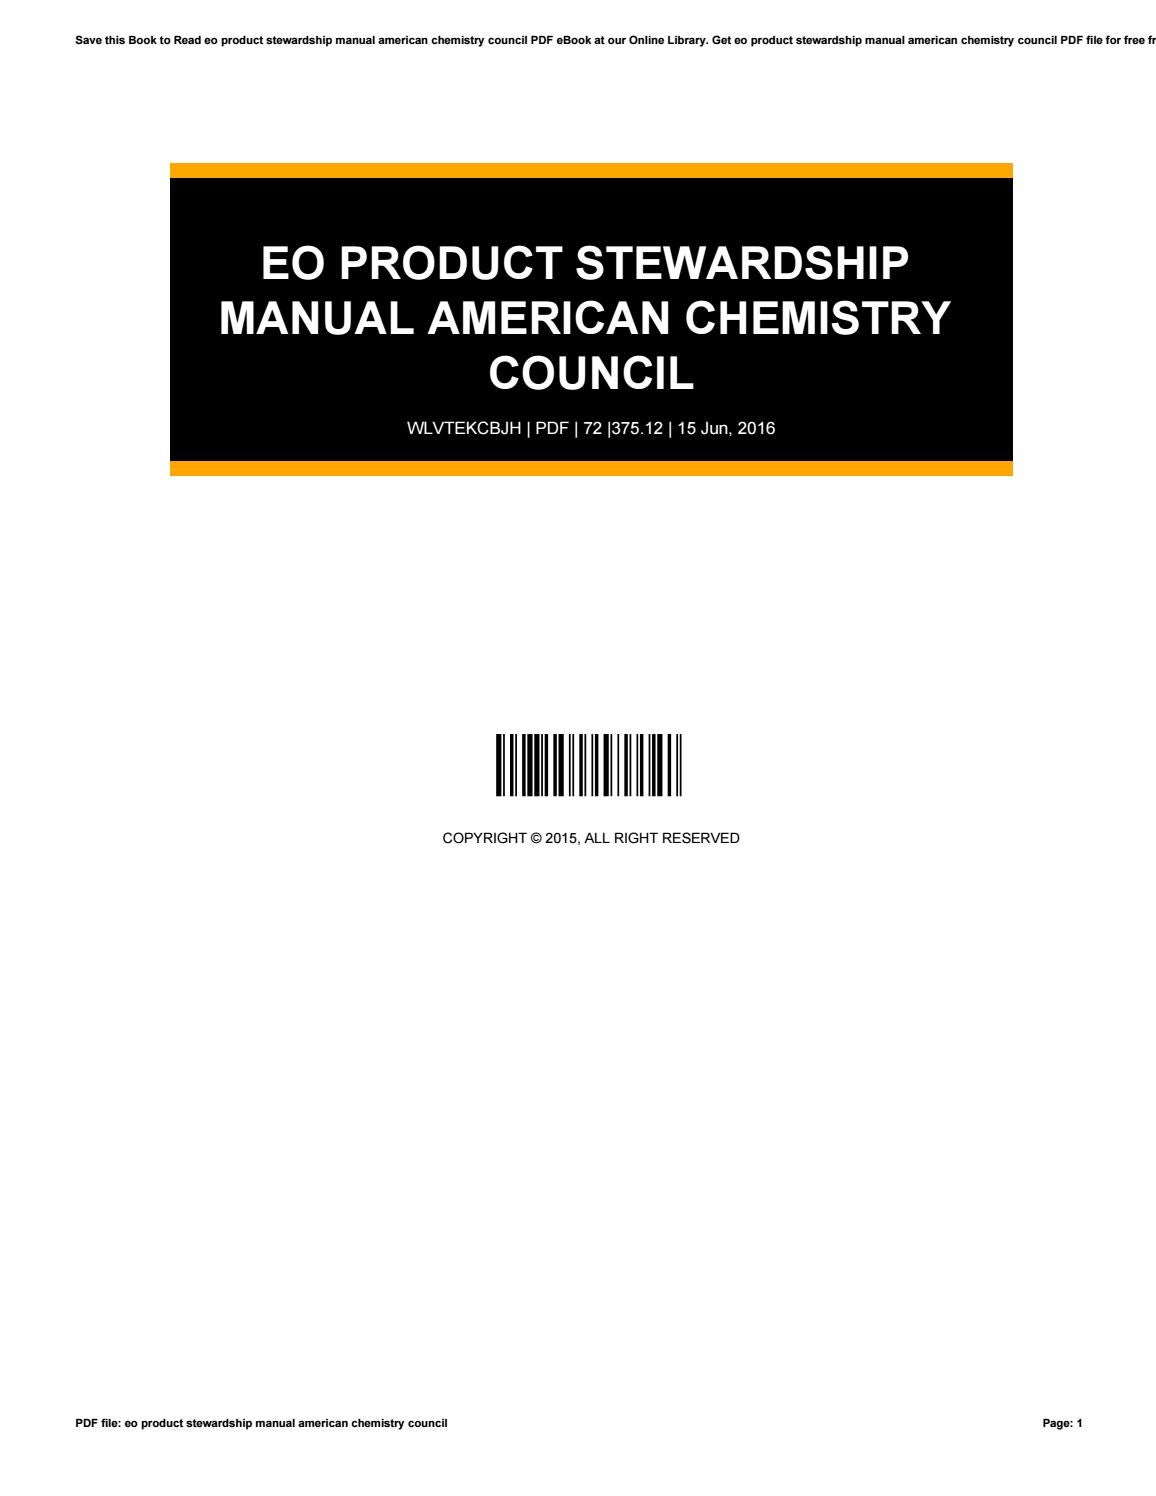 Eo product stewardship manual american chemistry council by ShawnCass4950 -  issuu